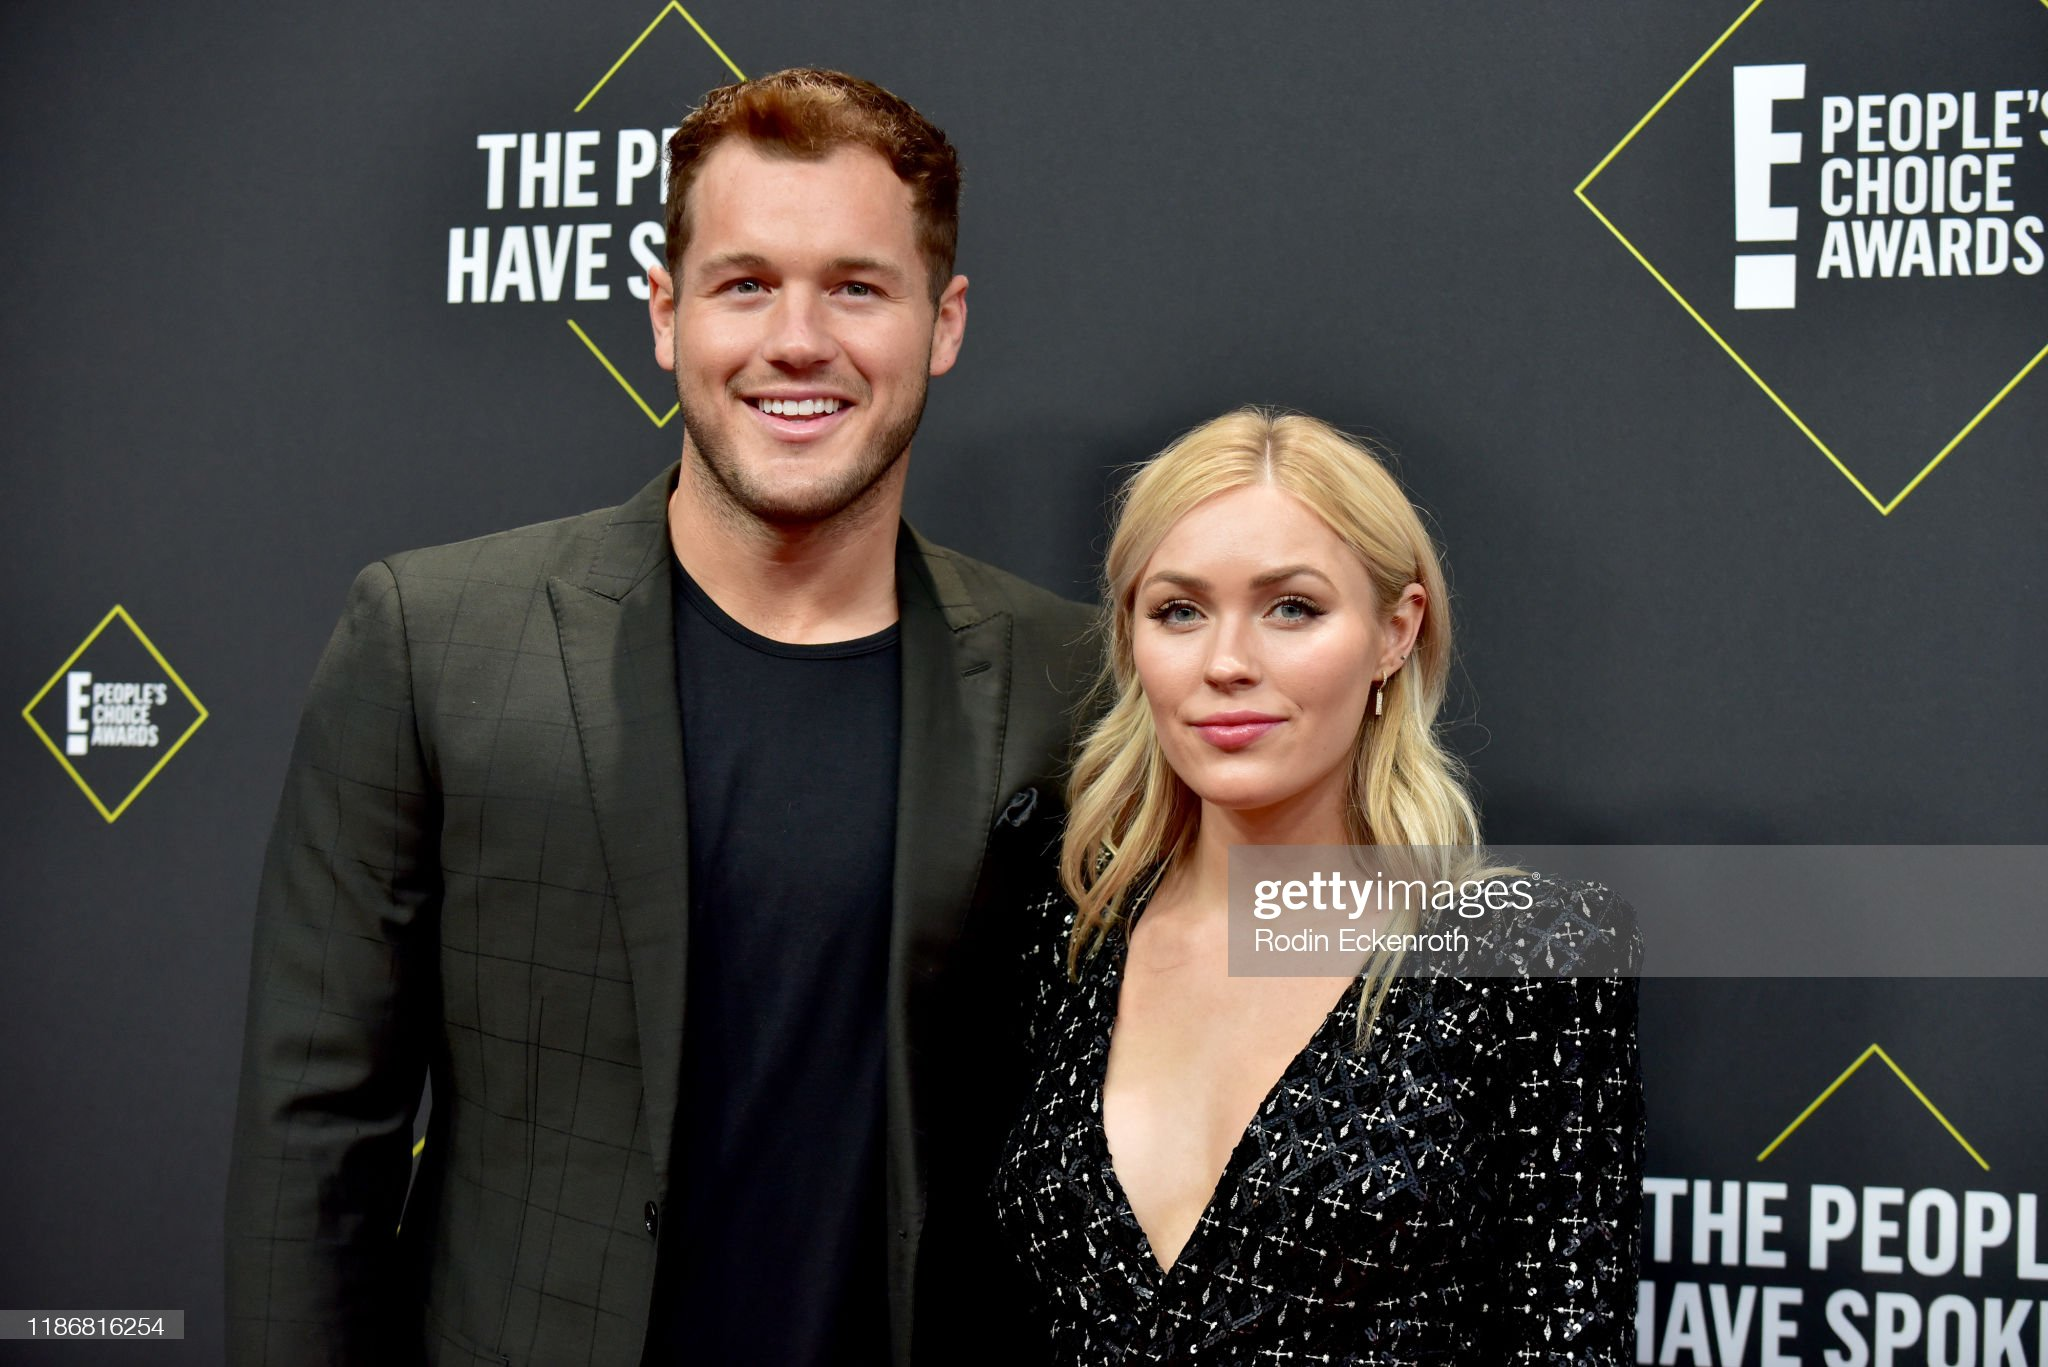 Colton Underwood & Cassie Randolph - Bachelor 23 - Discussion - Page 14 Colton-underwood-and-cassie-randolph-attend-the-2019-e-peoples-choice-picture-id1186816254?s=2048x2048